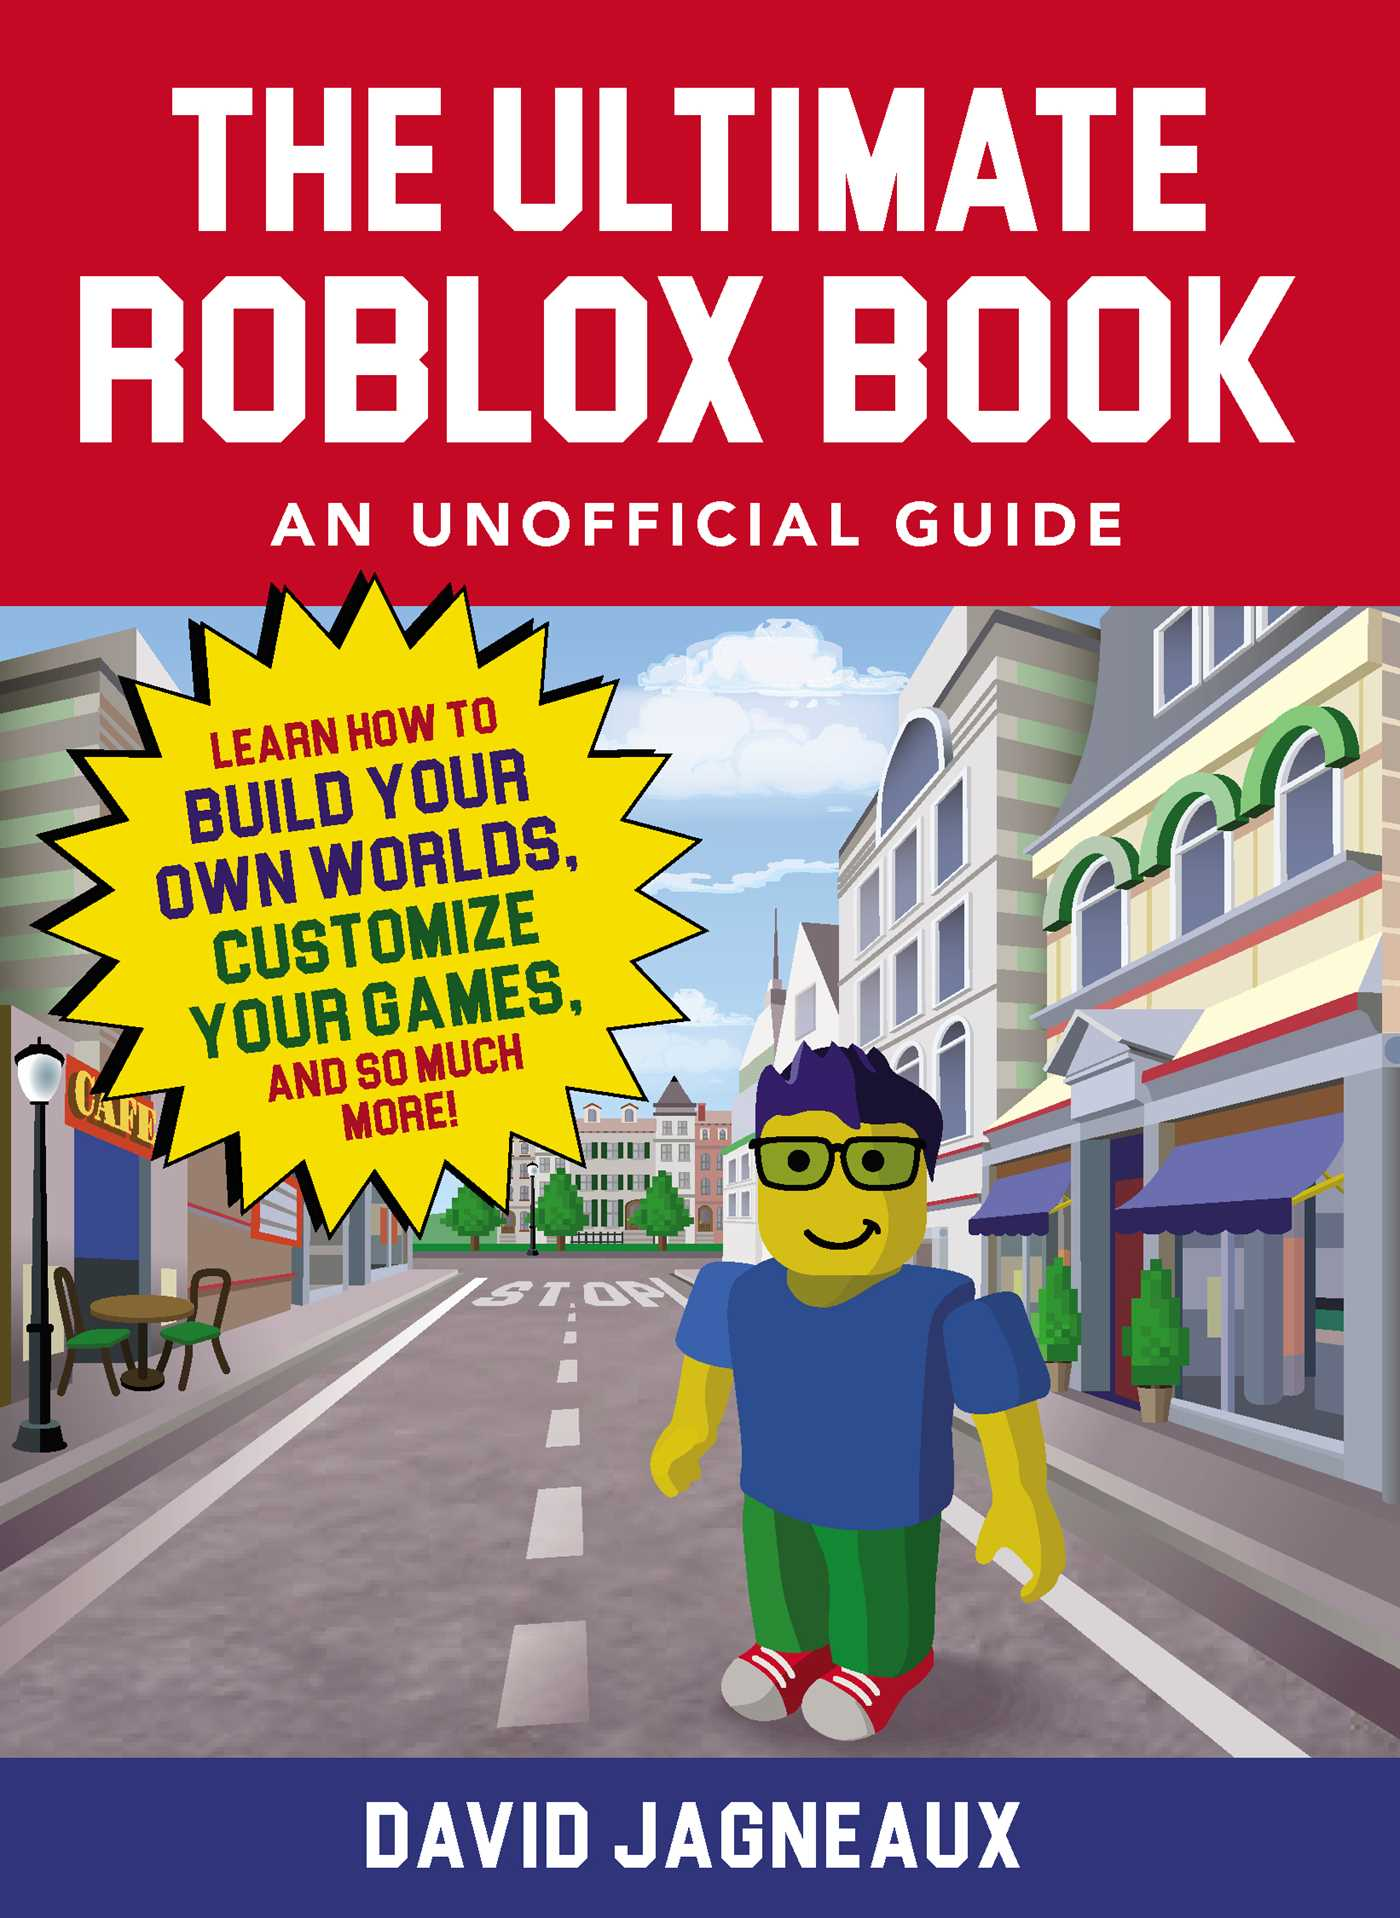 The ultimate roblox book an unofficial guide 9781507205334 hr